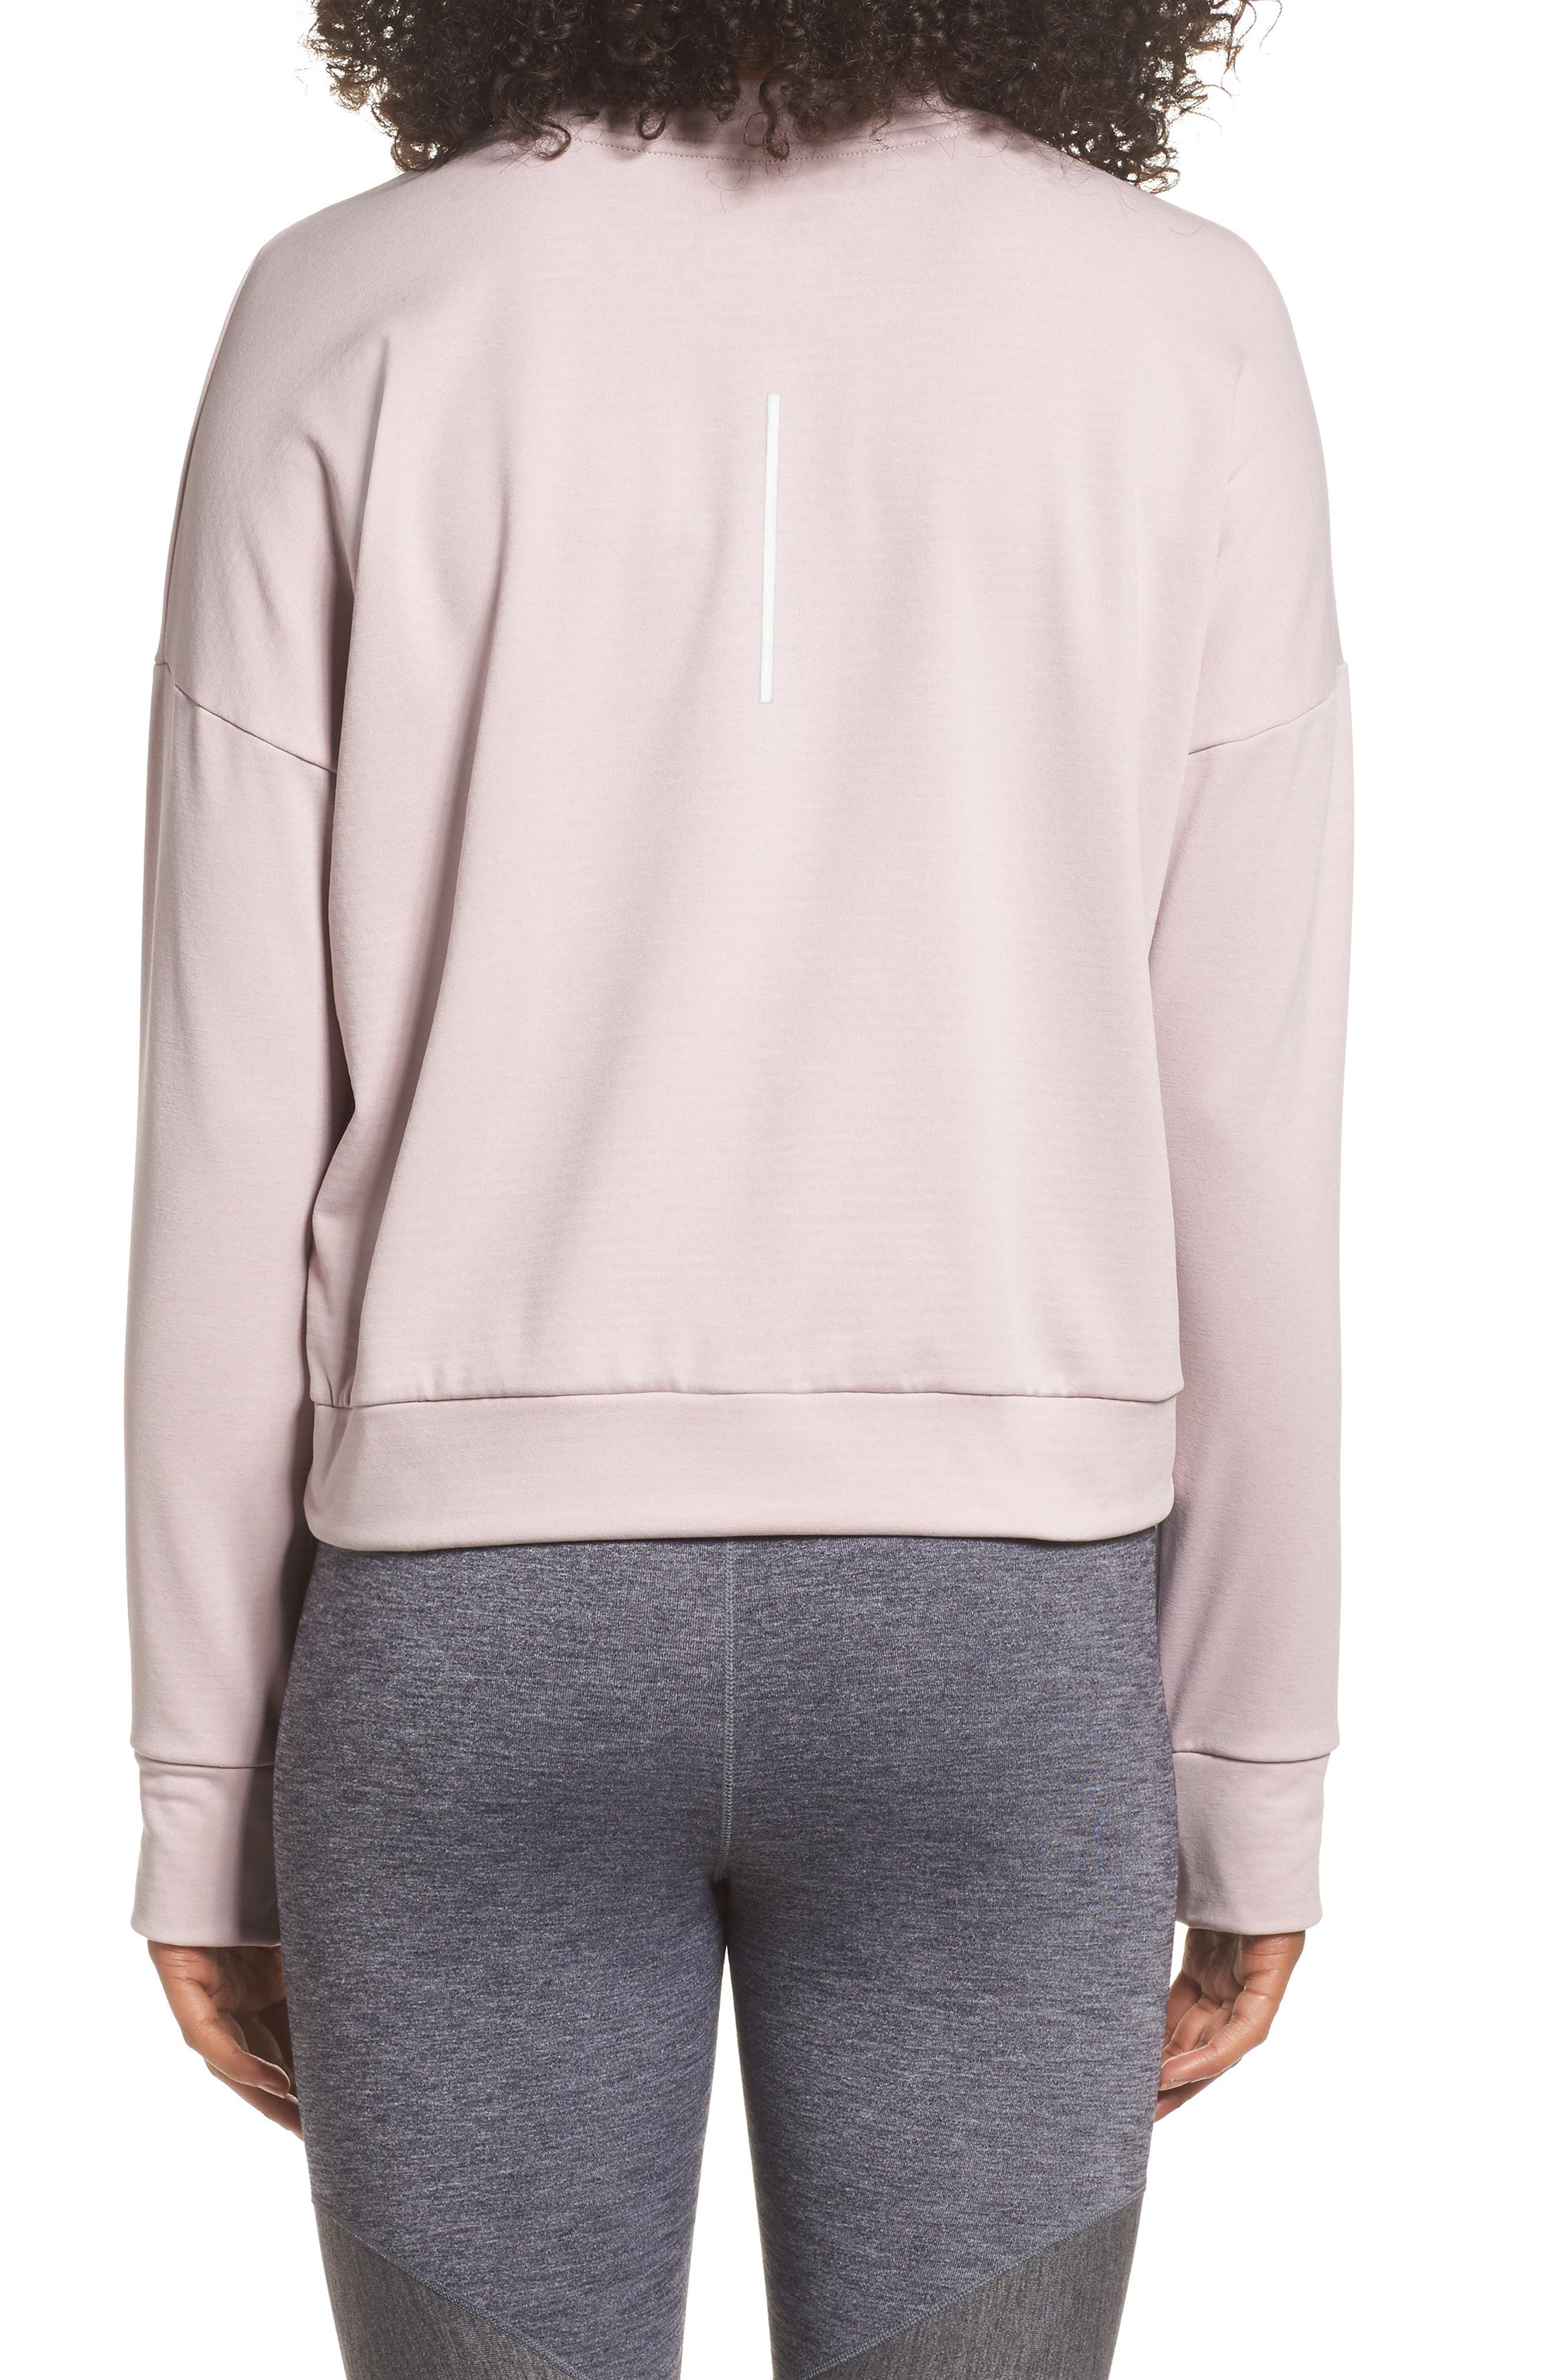 Therma Sphere Element Women's Running Top,                             Alternate thumbnail 2, color,                             Particle Rose